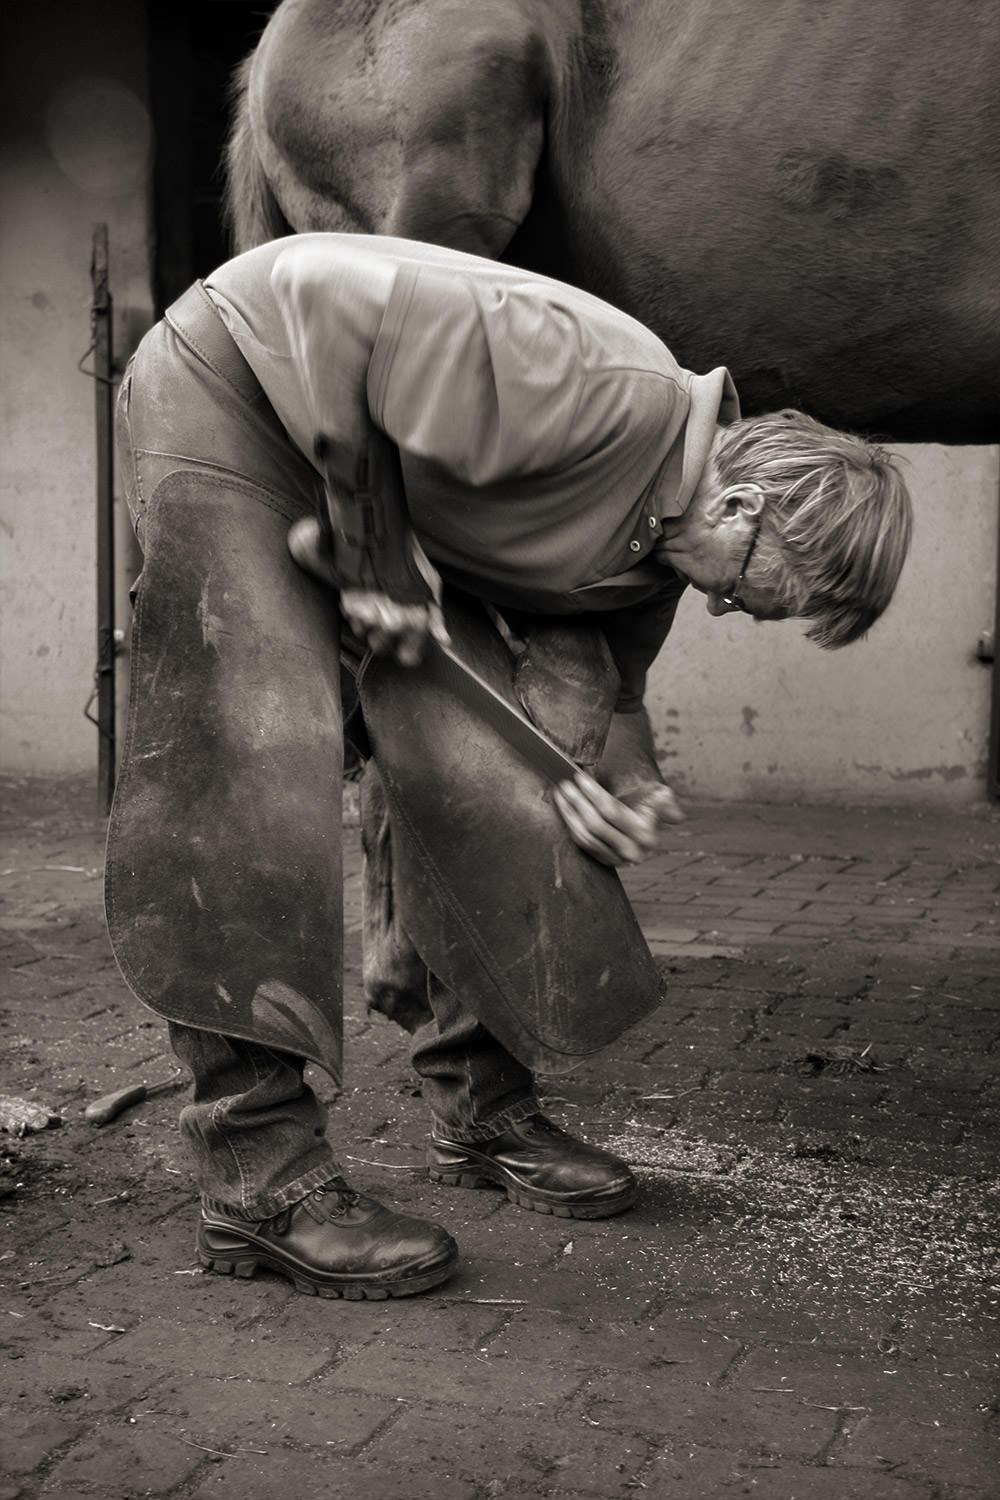 The Farrier at Work 2